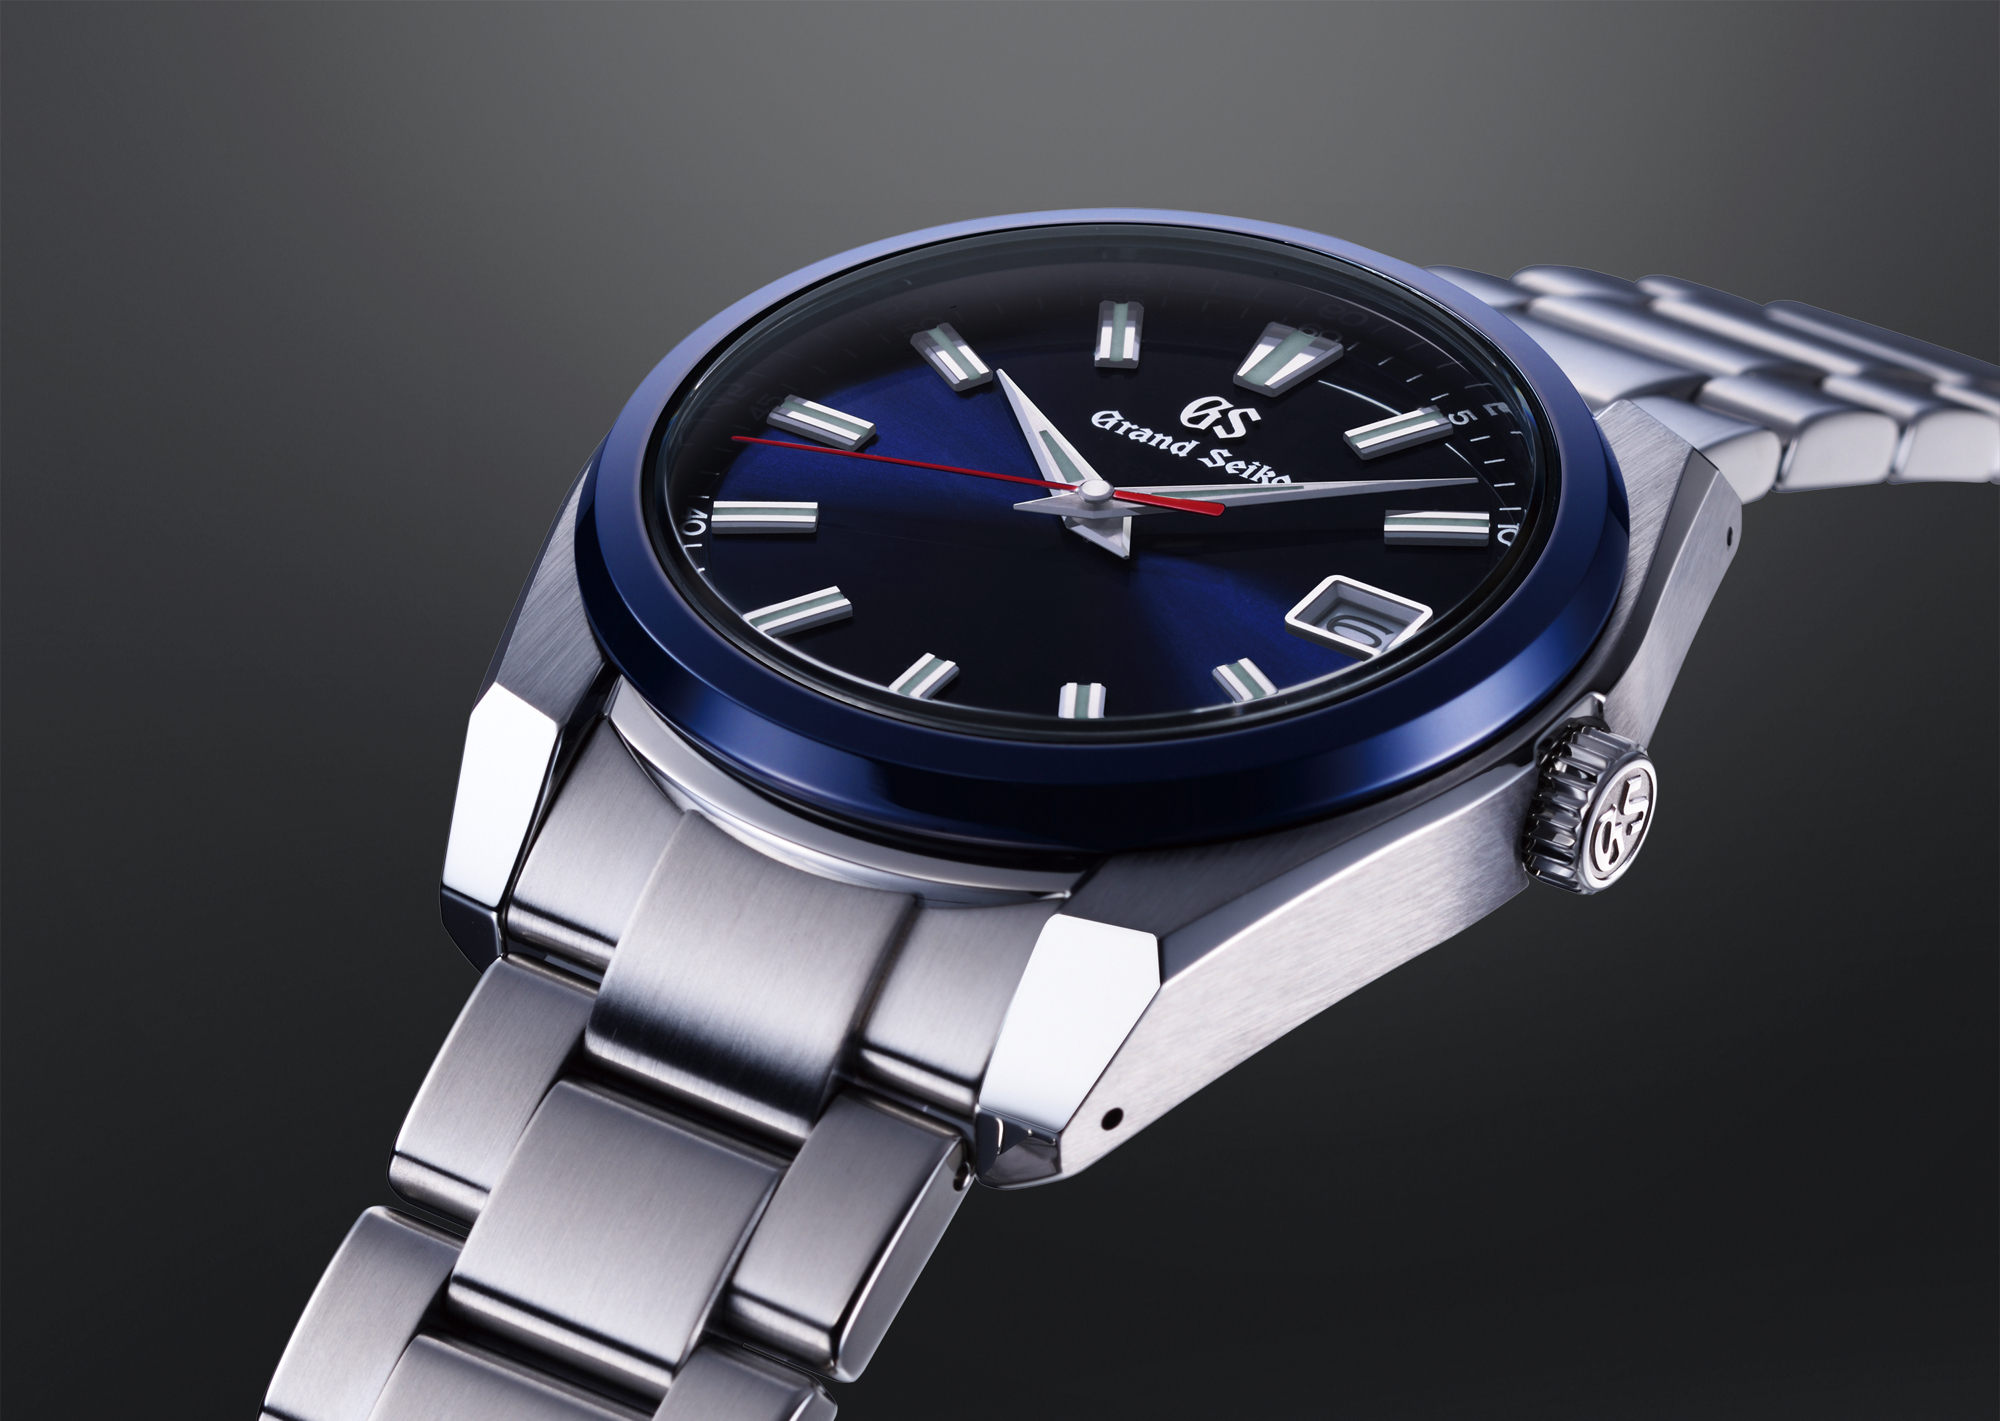 Grand Seiko 60th Anniversary Limited Edition SBGP015